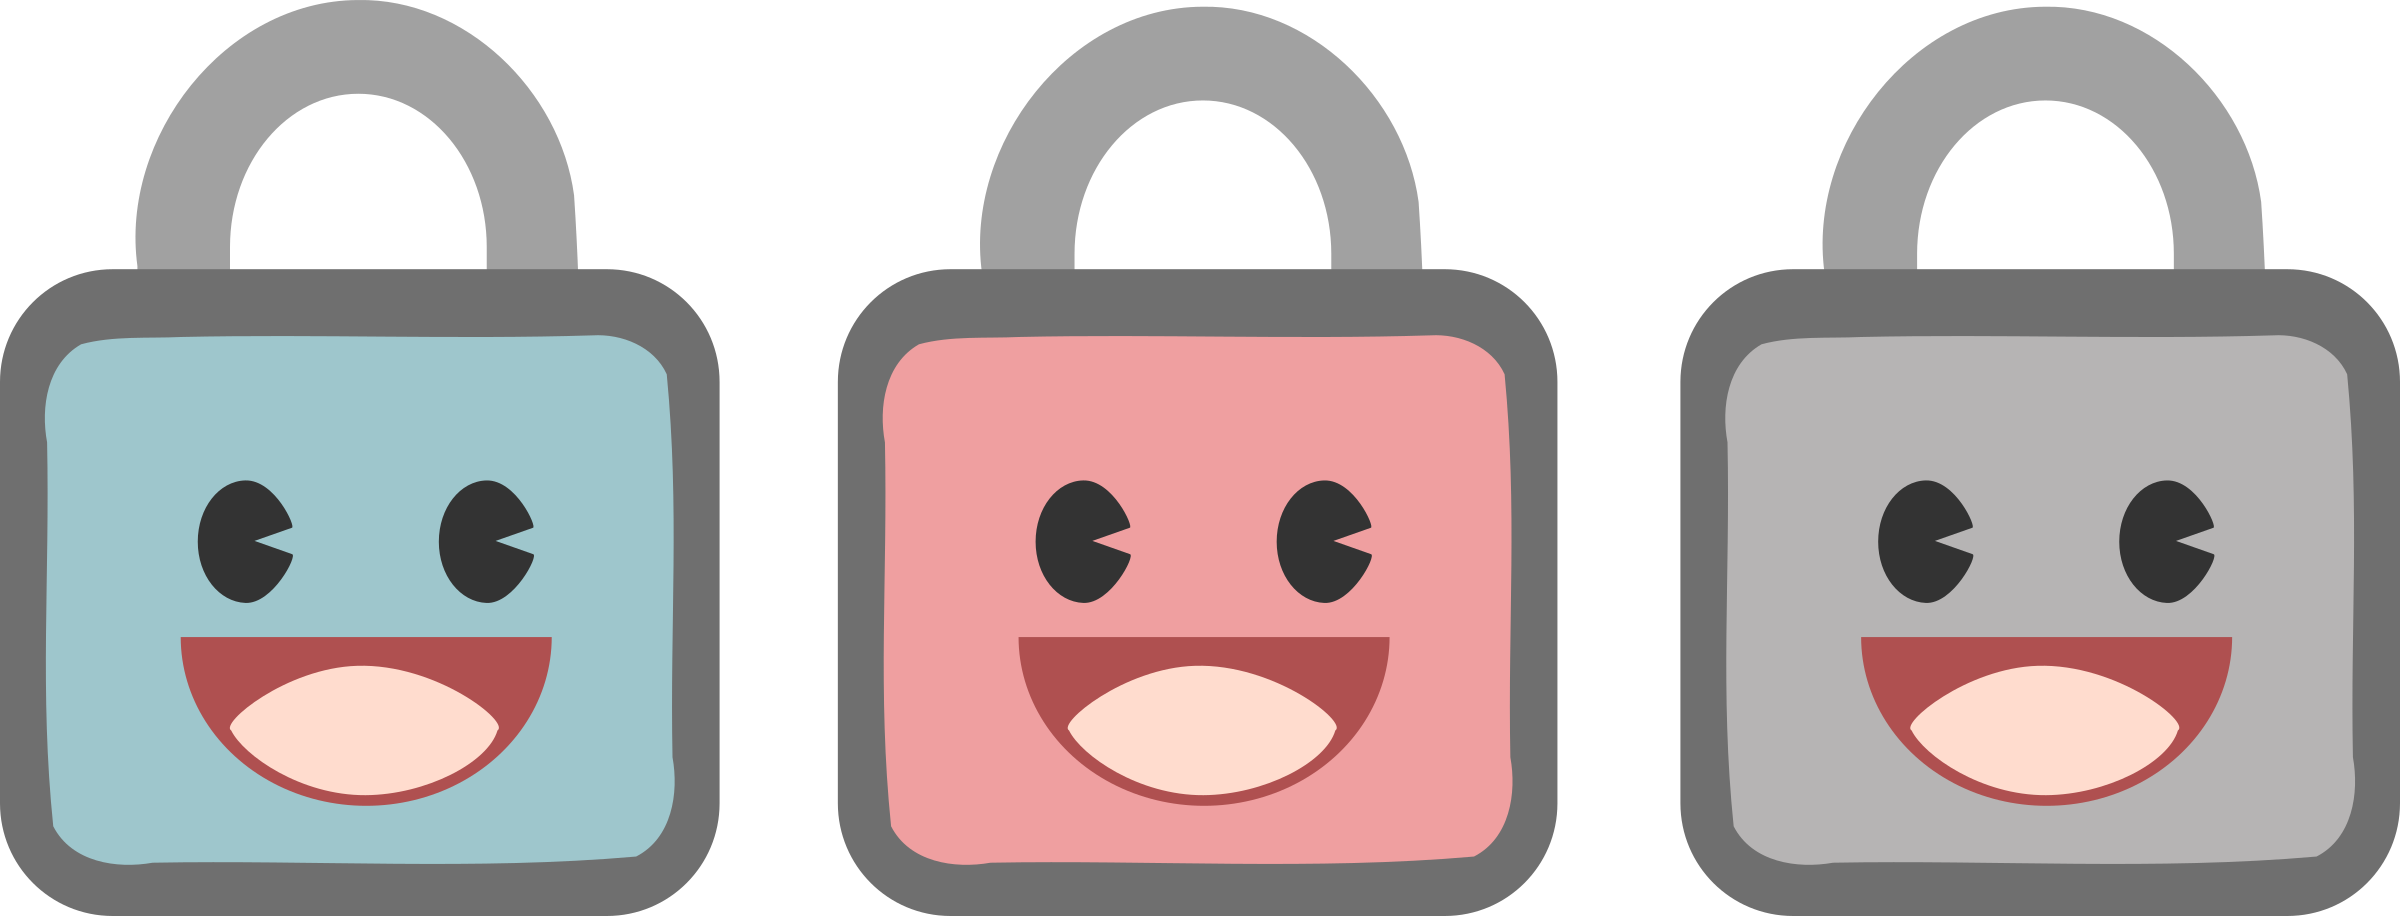 Cute png icons. Lock free and downloads